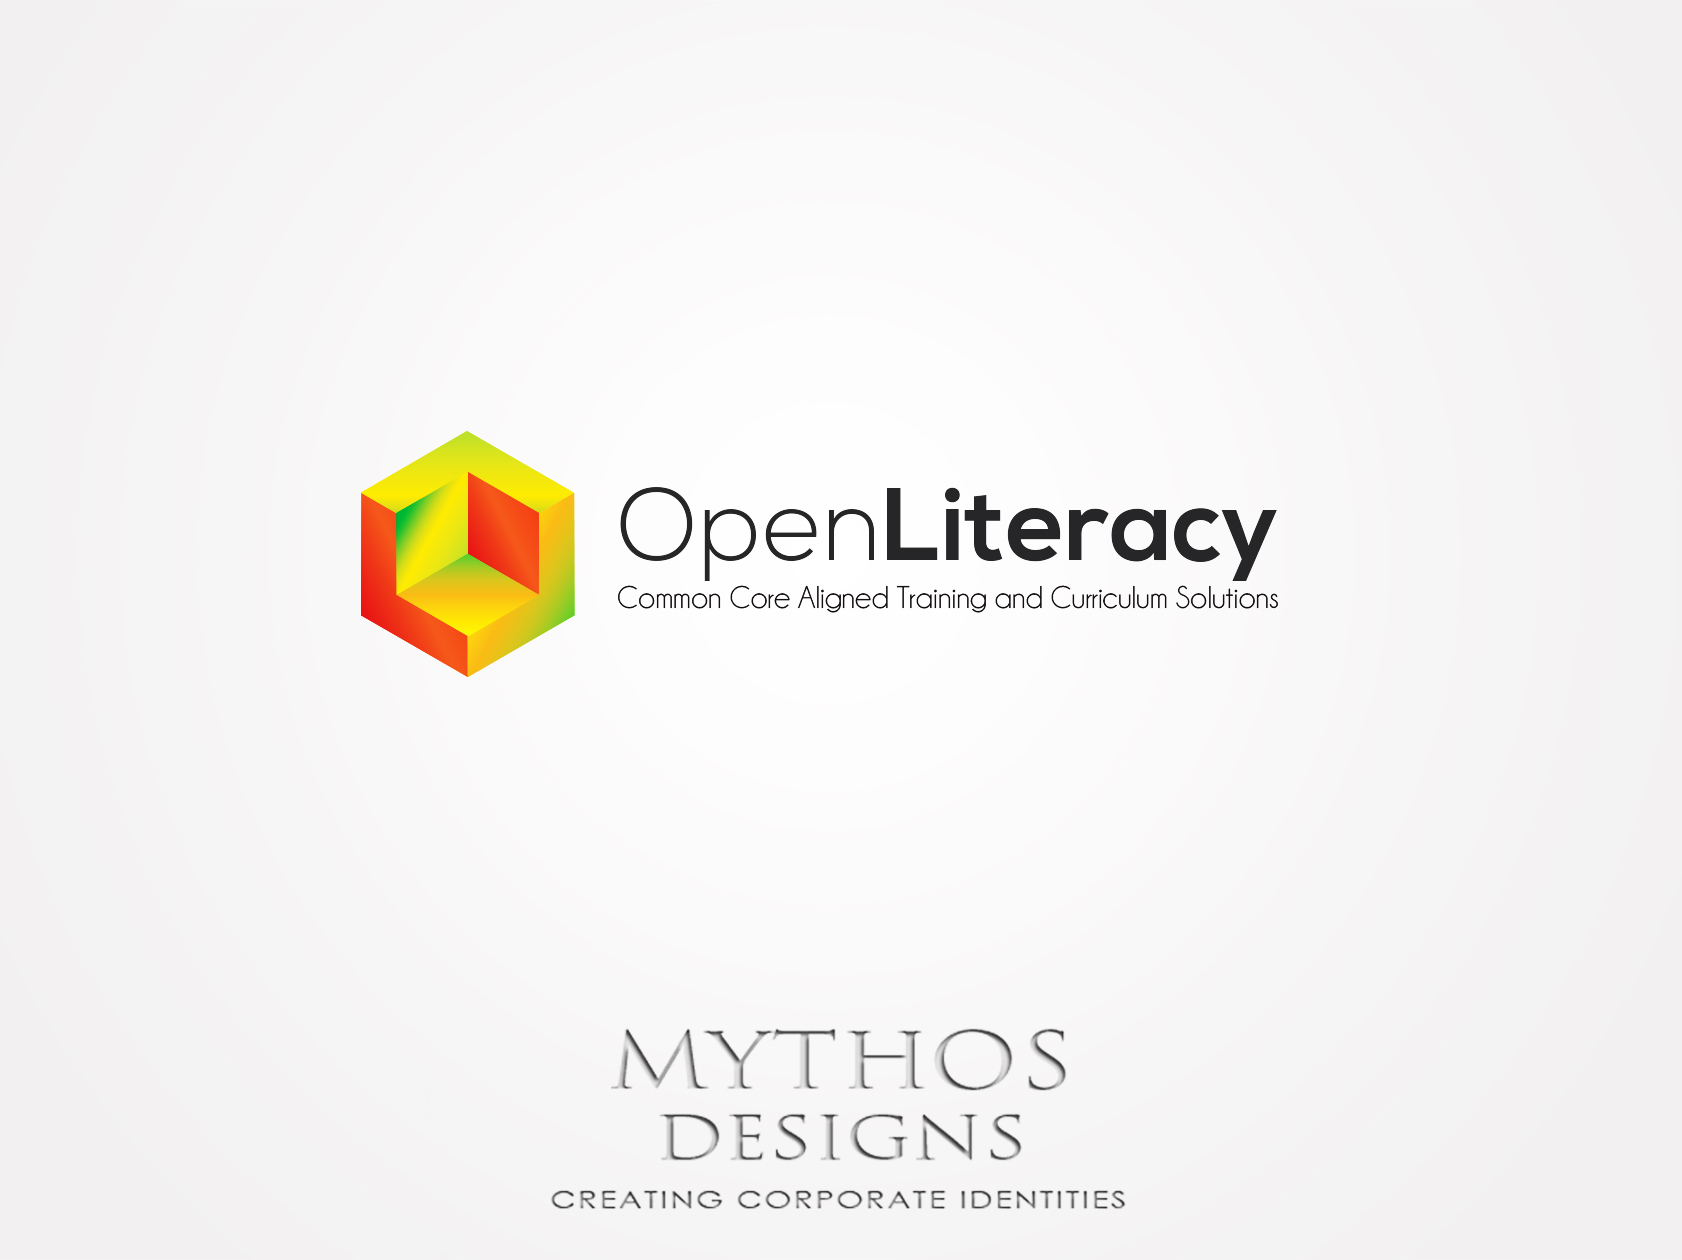 Logo Design by Mythos Designs - Entry No. 93 in the Logo Design Contest Inspiring Logo Design for OpenLiteracy.